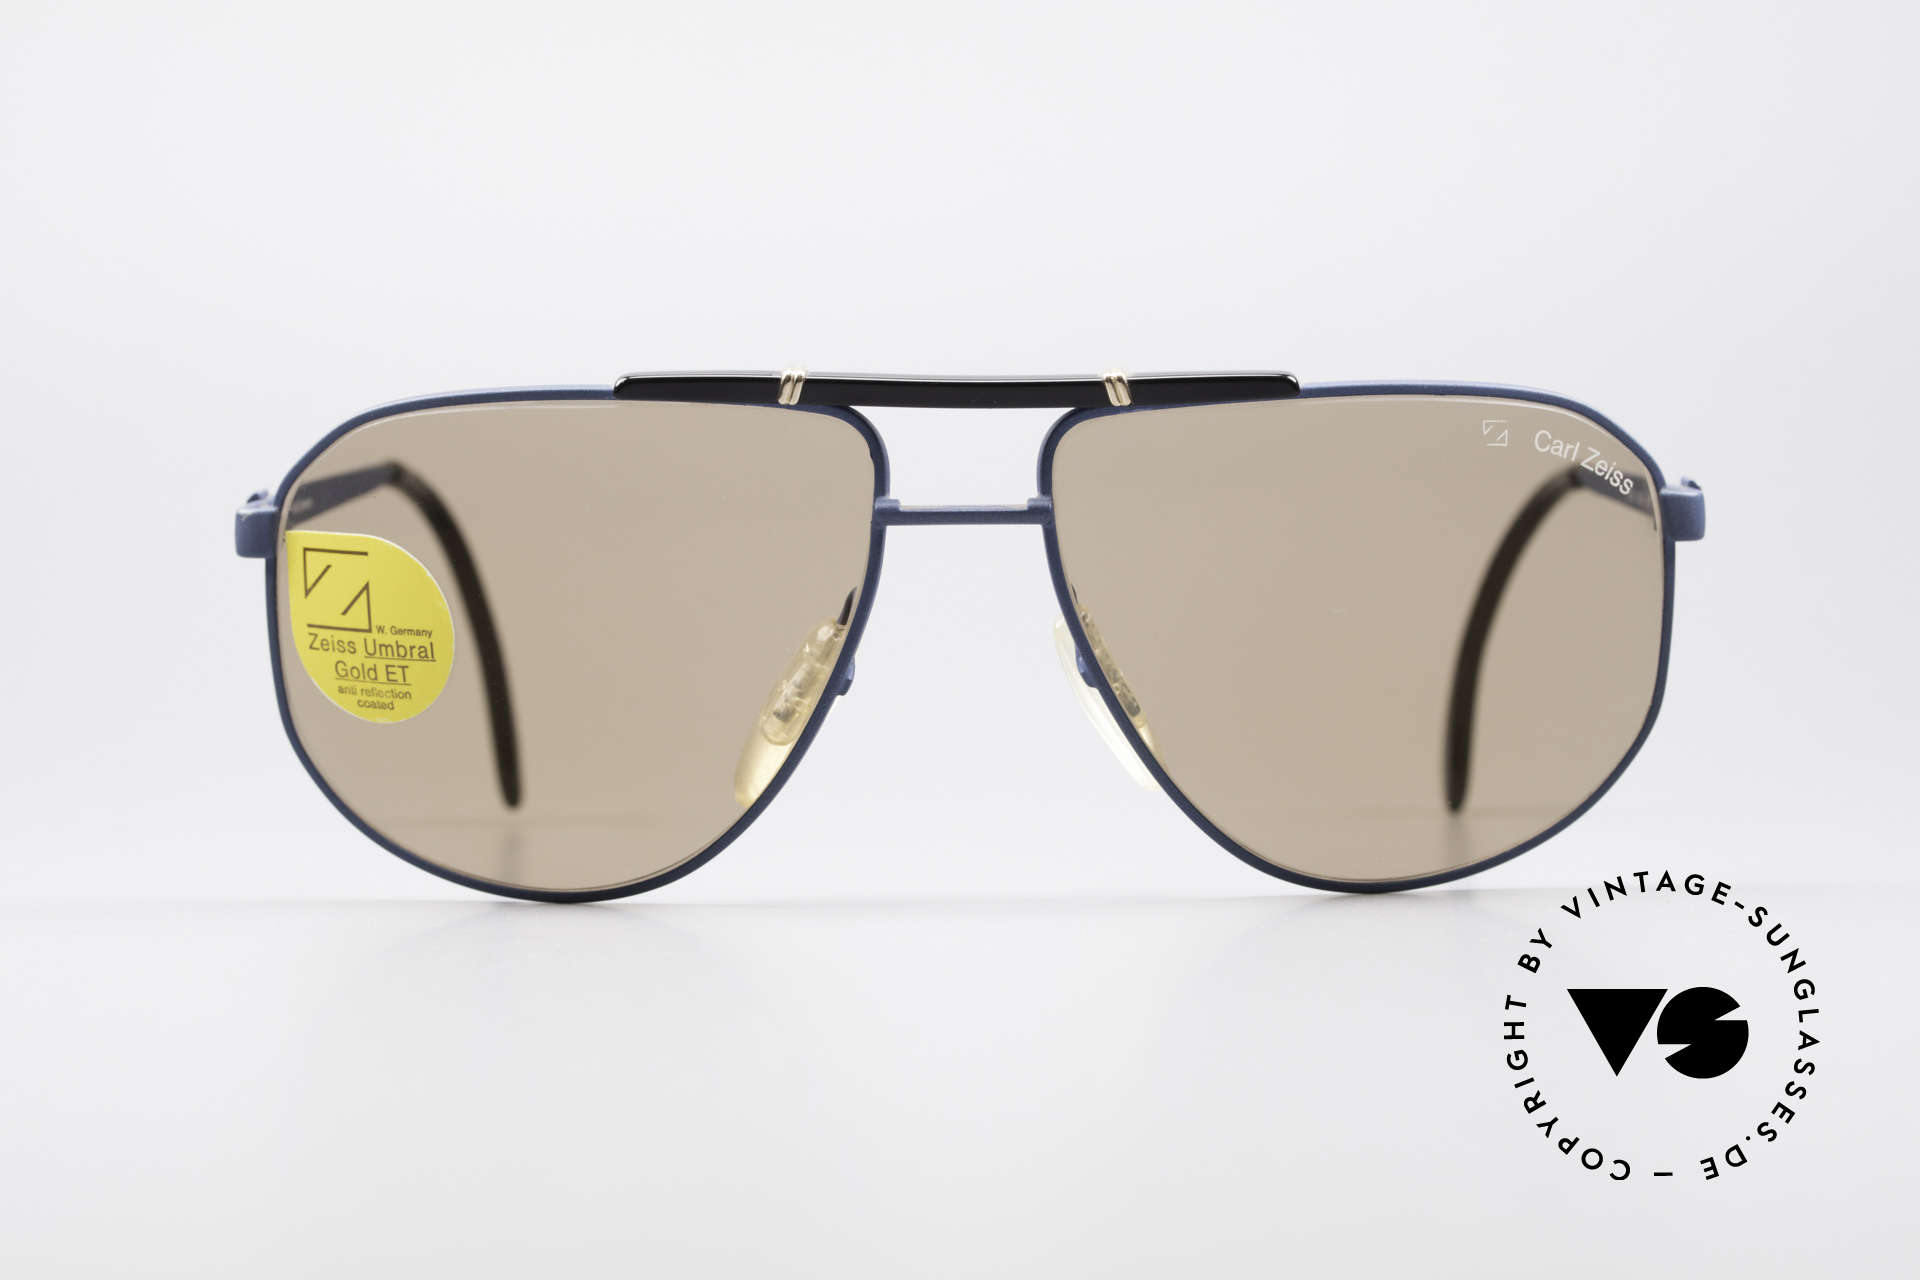 Zeiss 9292 Umbral Gold Quality Lenses, a real alternative to the ordinary 'aviator design', Made for Men